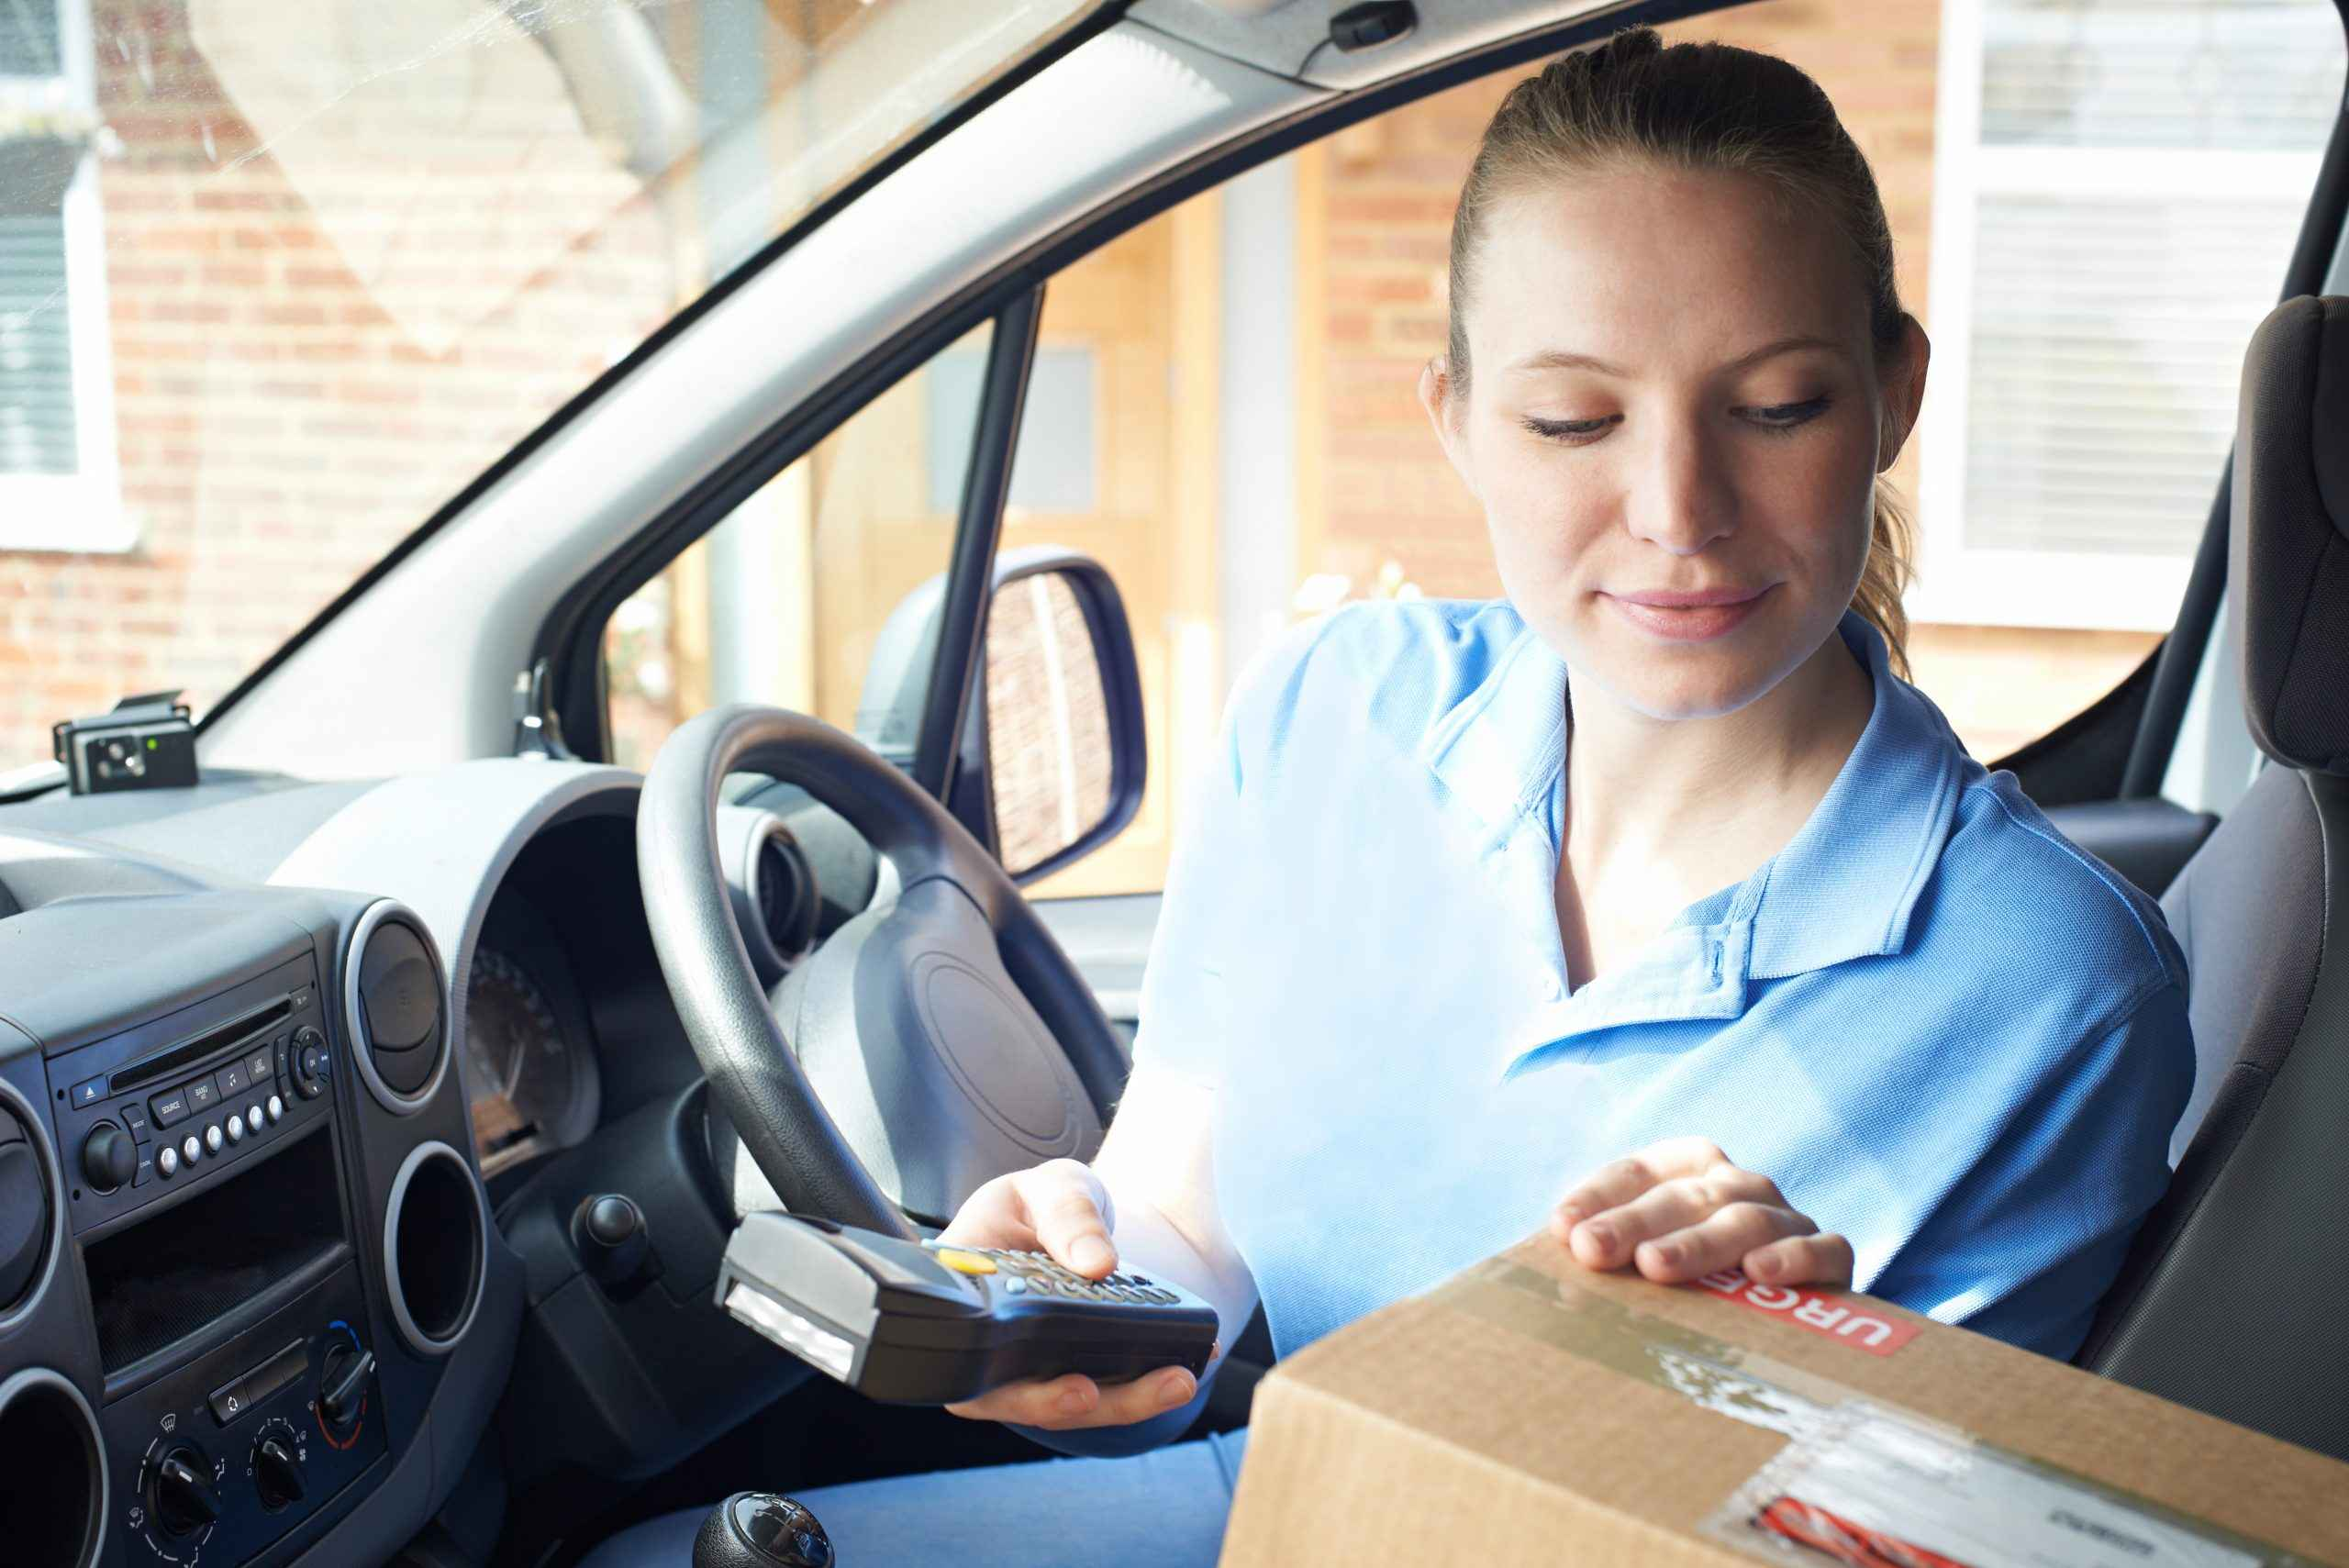 Female courier checking a parcel inside a van